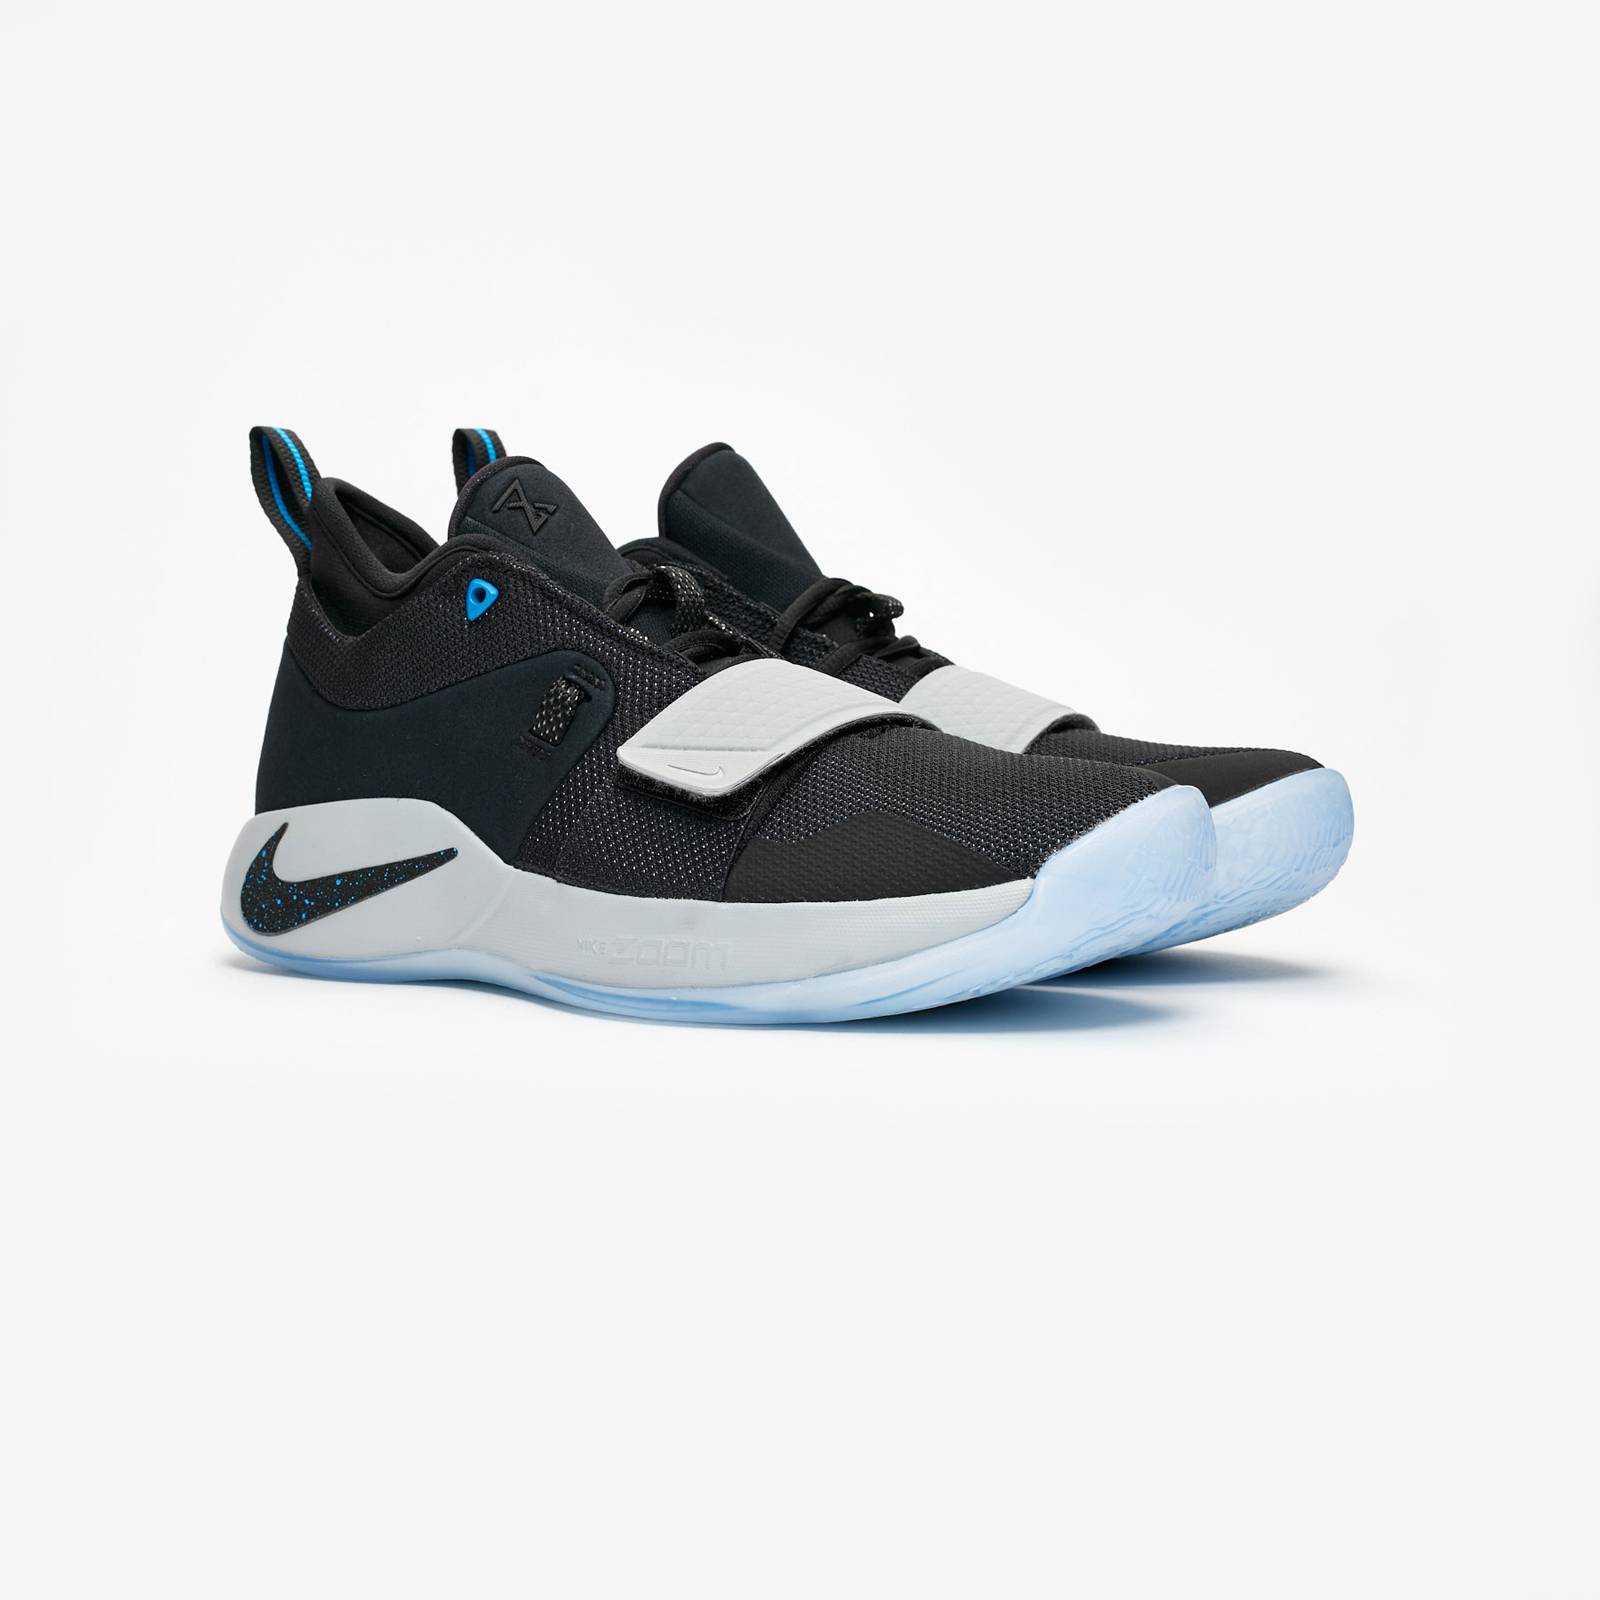 newest 2a69a 7f30c Nike PG 2.5 - Bq8452-006 - Sneakersnstuff | sneakers ...